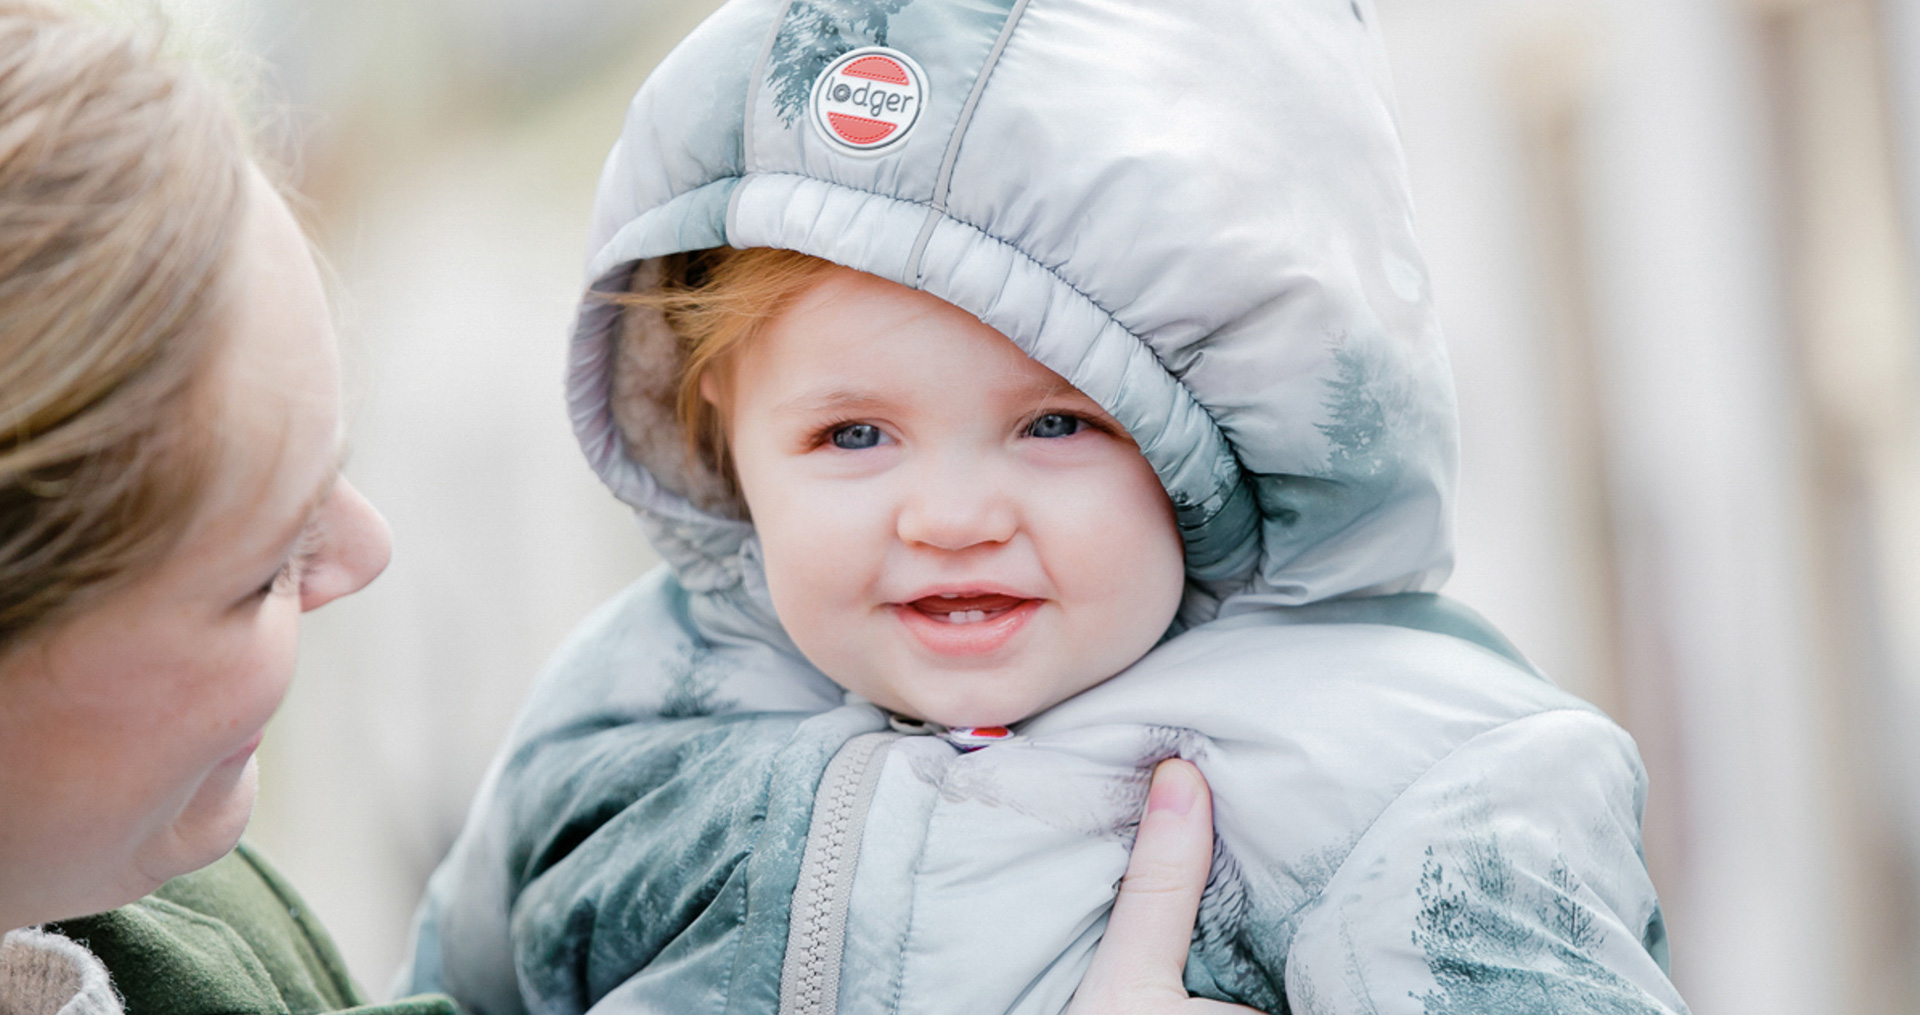 5 Tips To Keep Your Baby Warm When You Go Outside In Winter